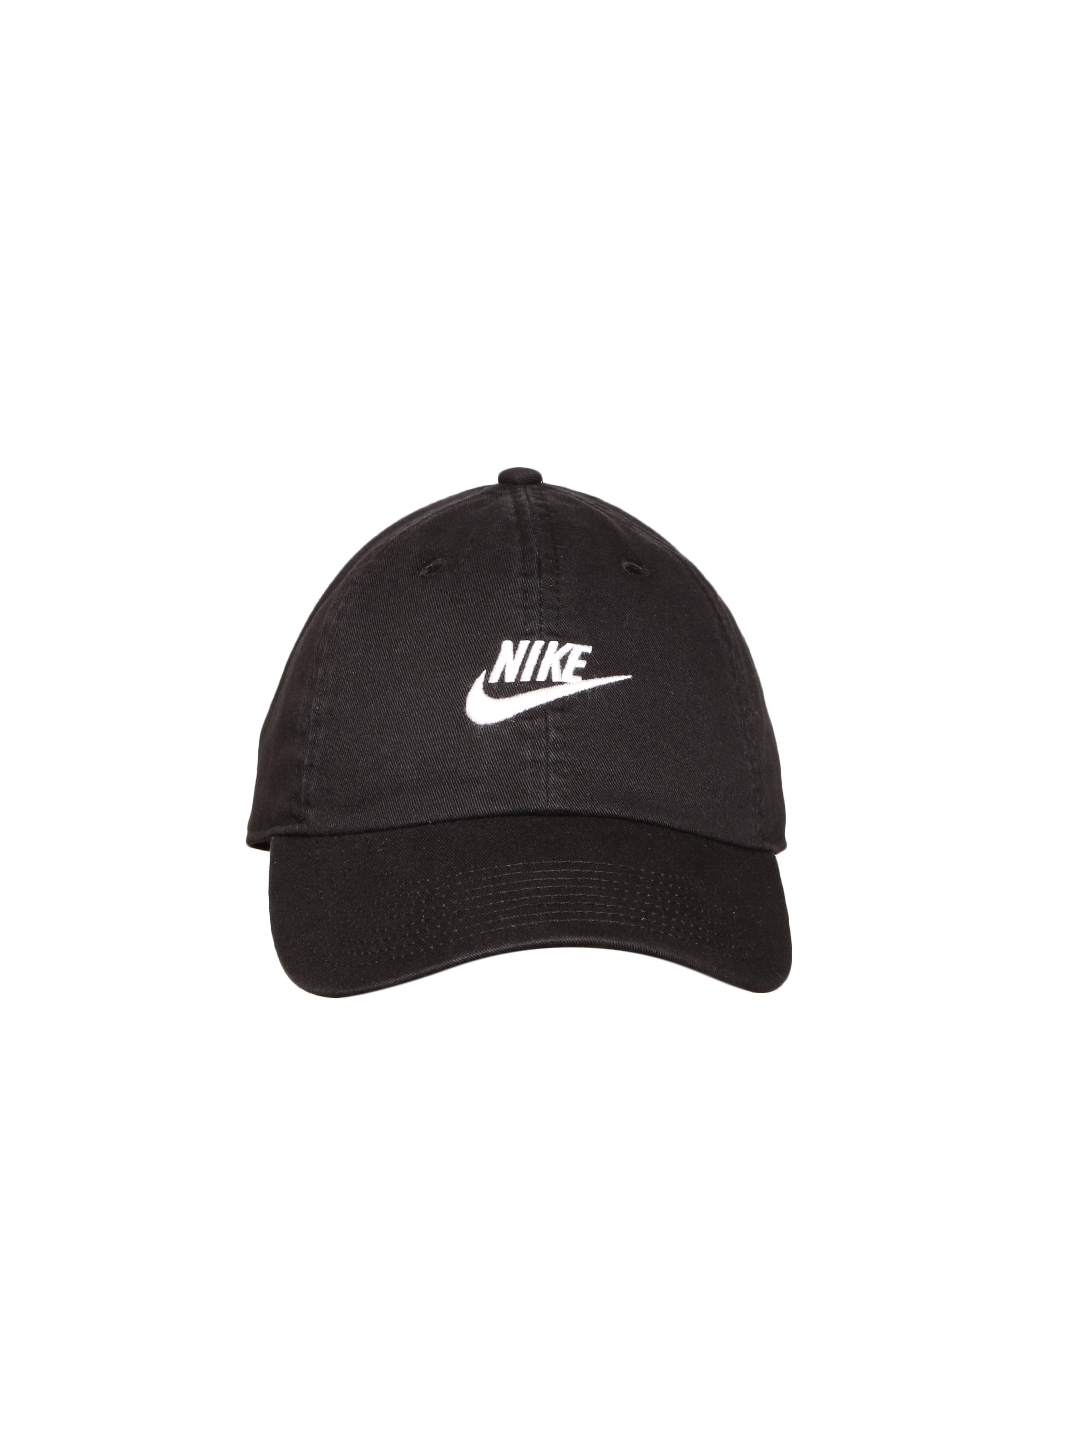 177e825af Nike Unisex Black NSW H86 Futura Washed Solid Cap